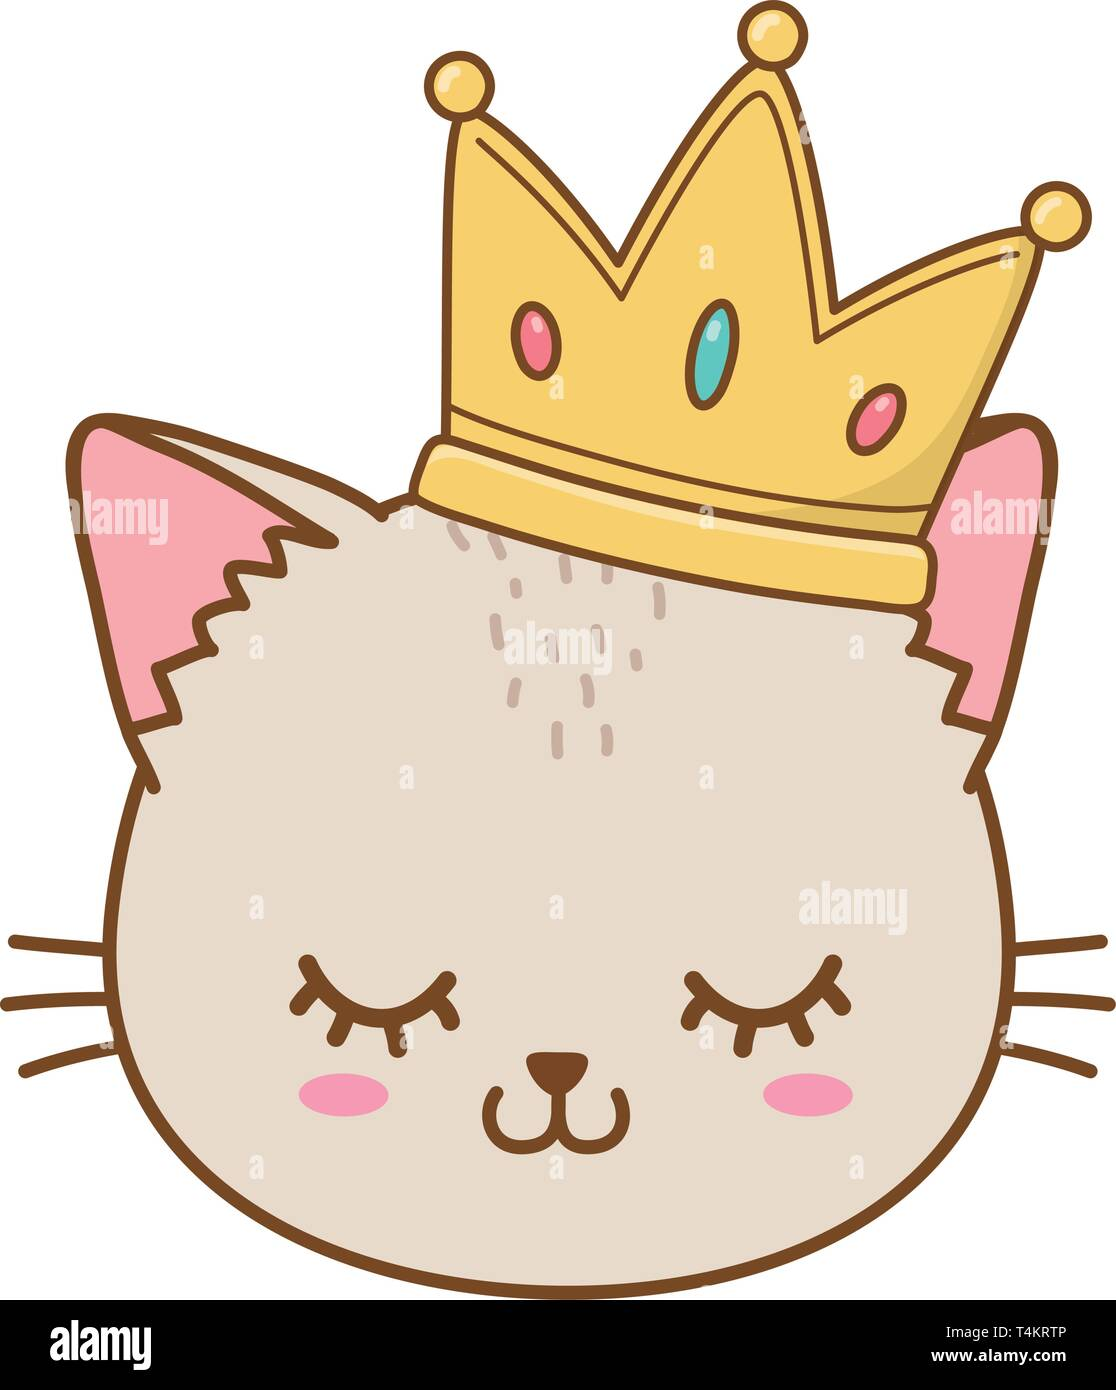 Cat With Crown Icon Cartoon Vector Illustration Graphic Design Stock Vector Image Art Alamy Funny kitties for birthday greeting card. https www alamy com cat with crown icon cartoon vector illustration graphic design image243839590 html